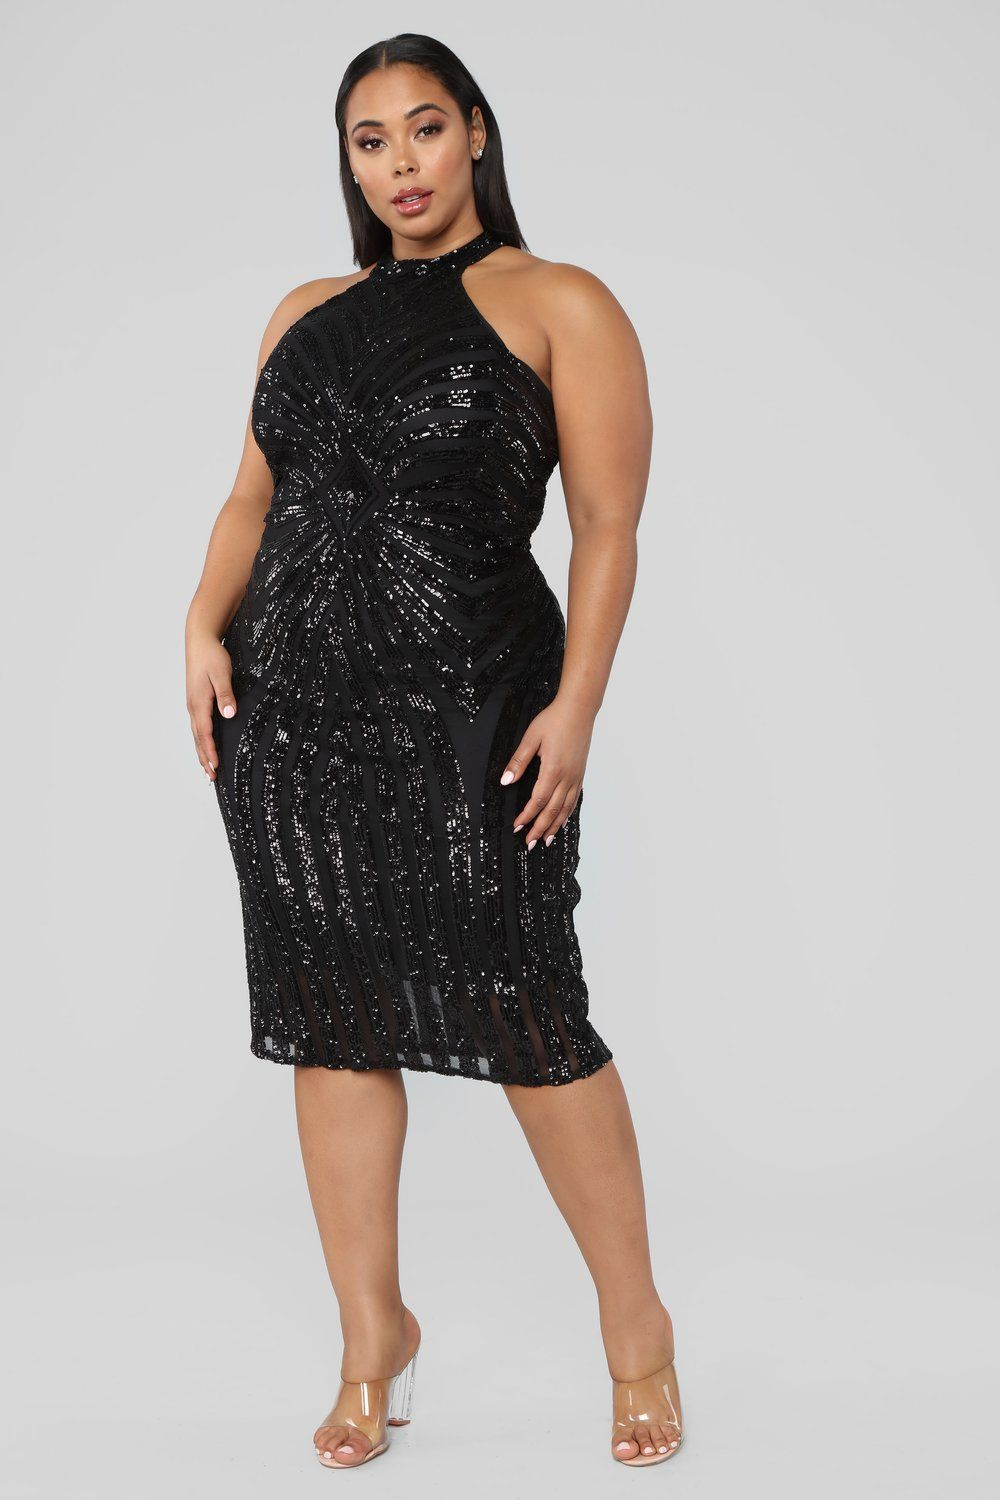 fadd36f2749 Buy women s plus size clothing including dresses